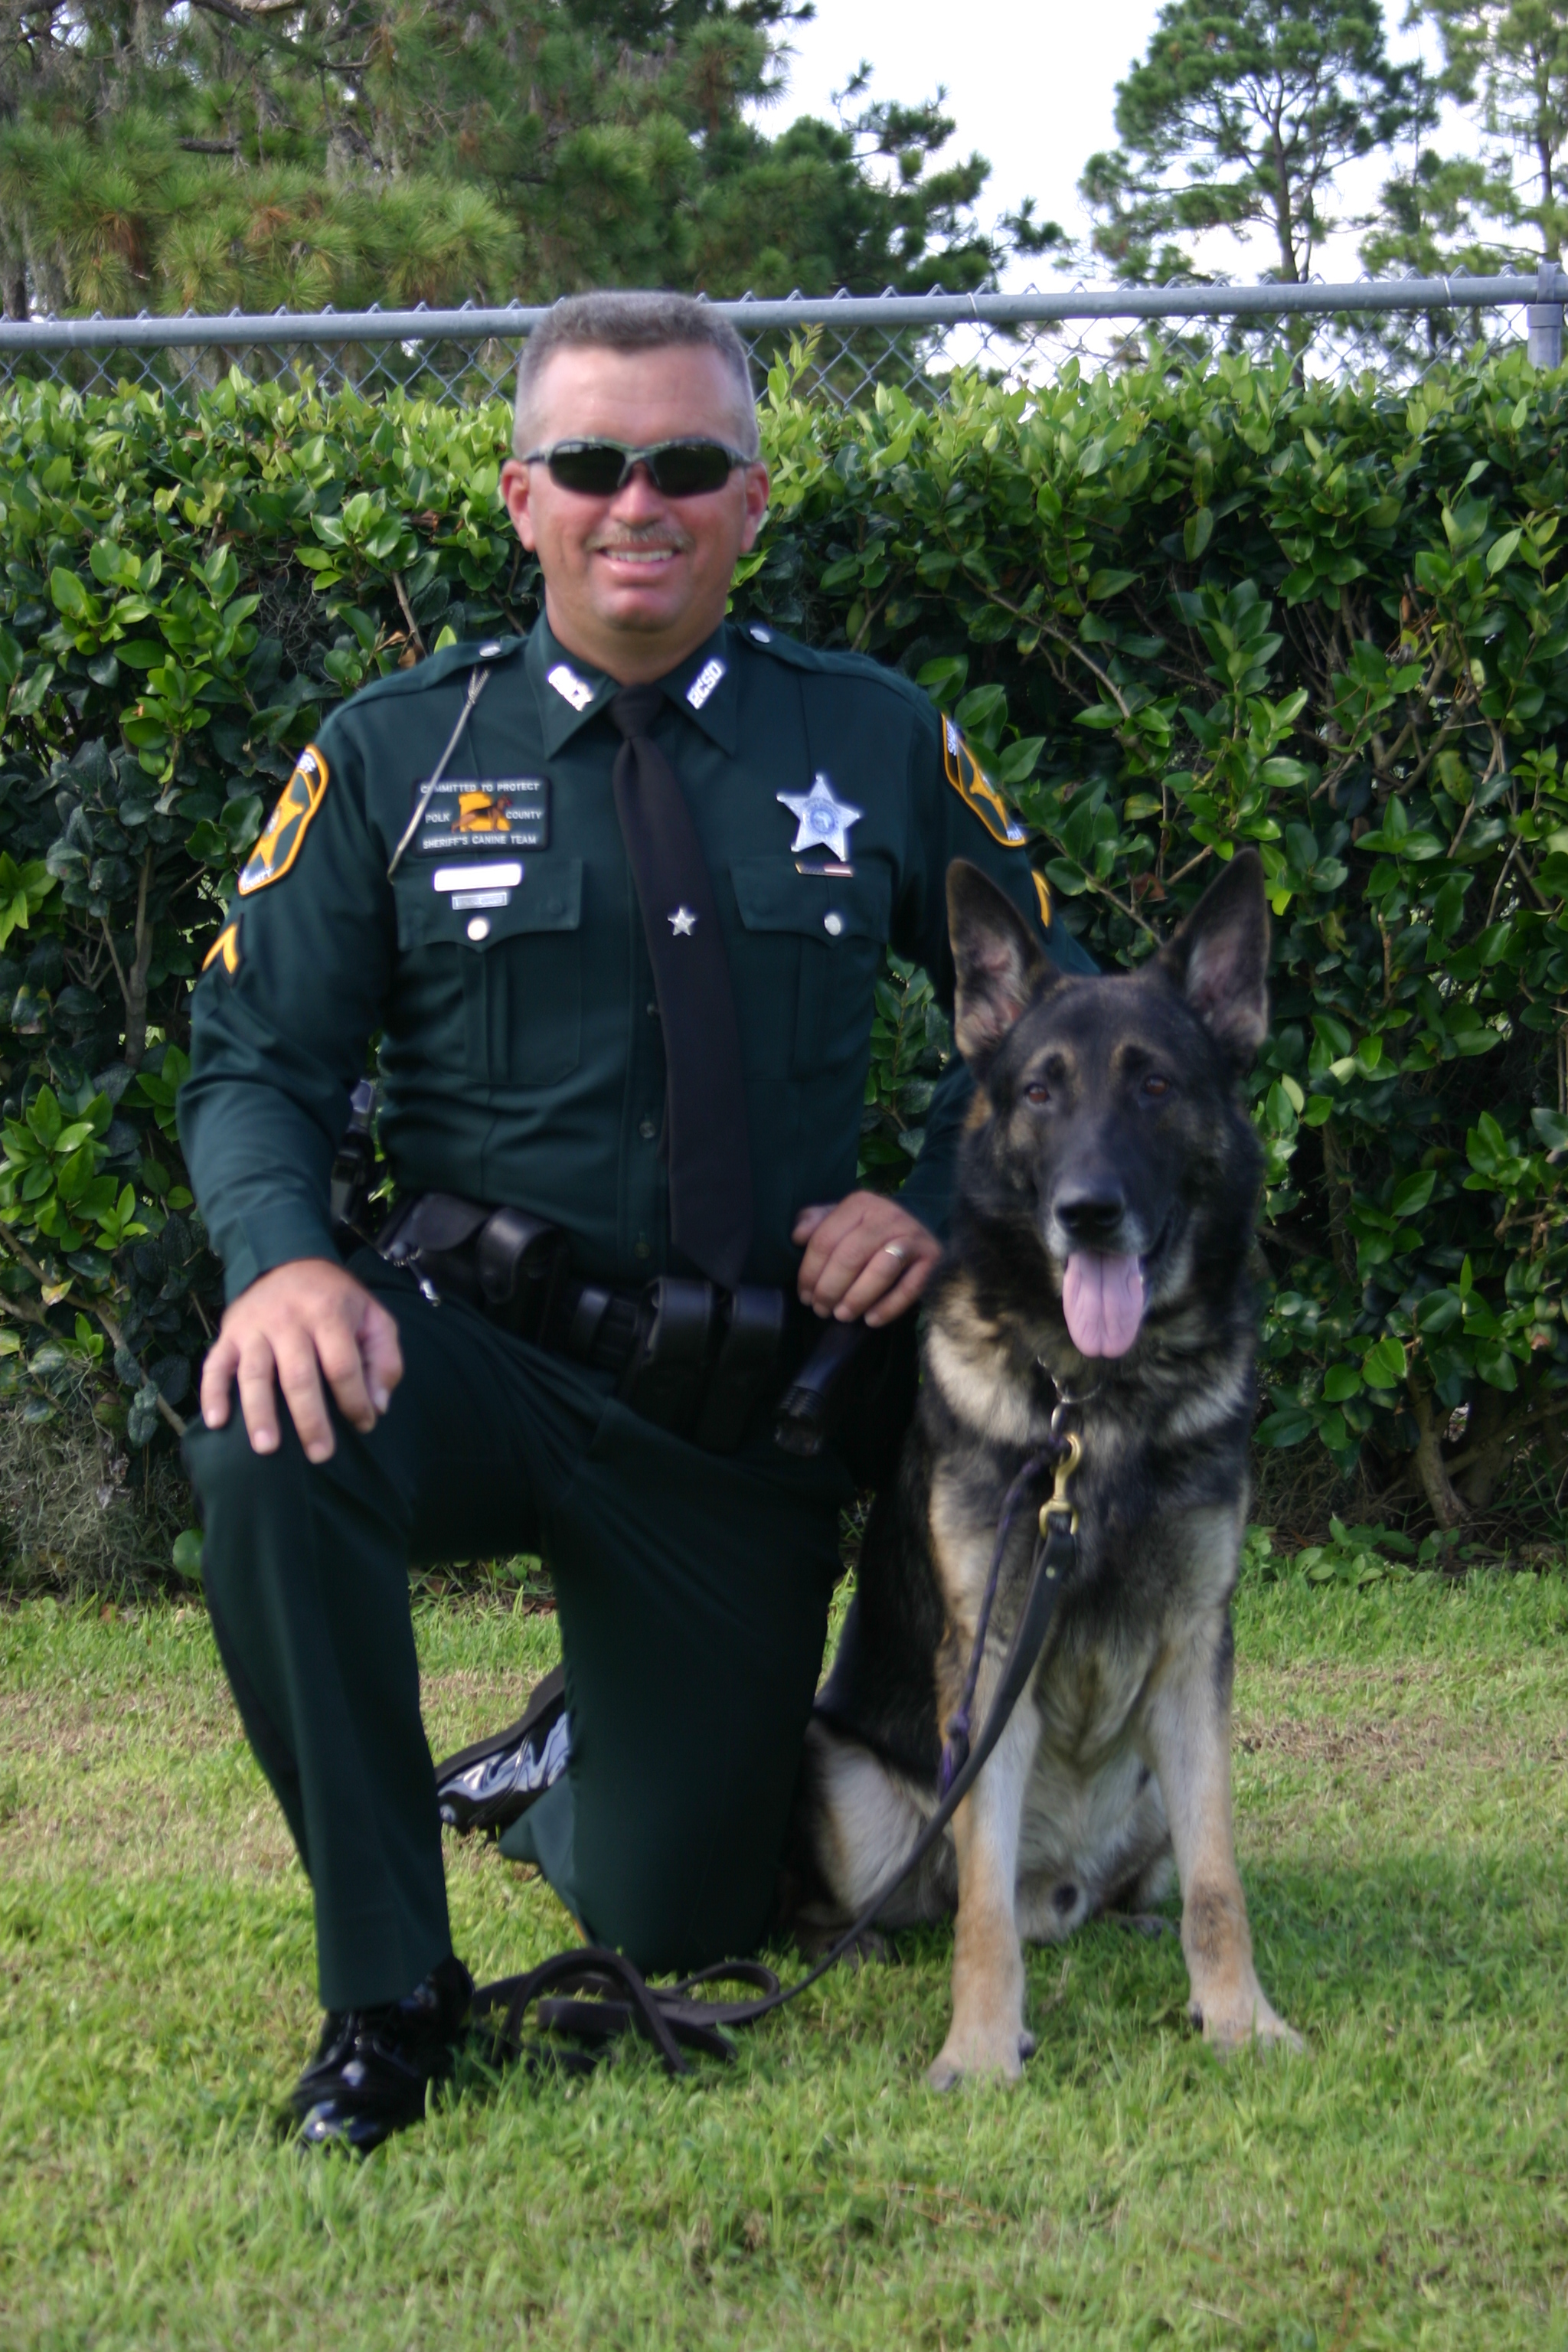 Deputy Sheriff Vernon Matthew Williams | Polk County Sheriff's Office, Florida